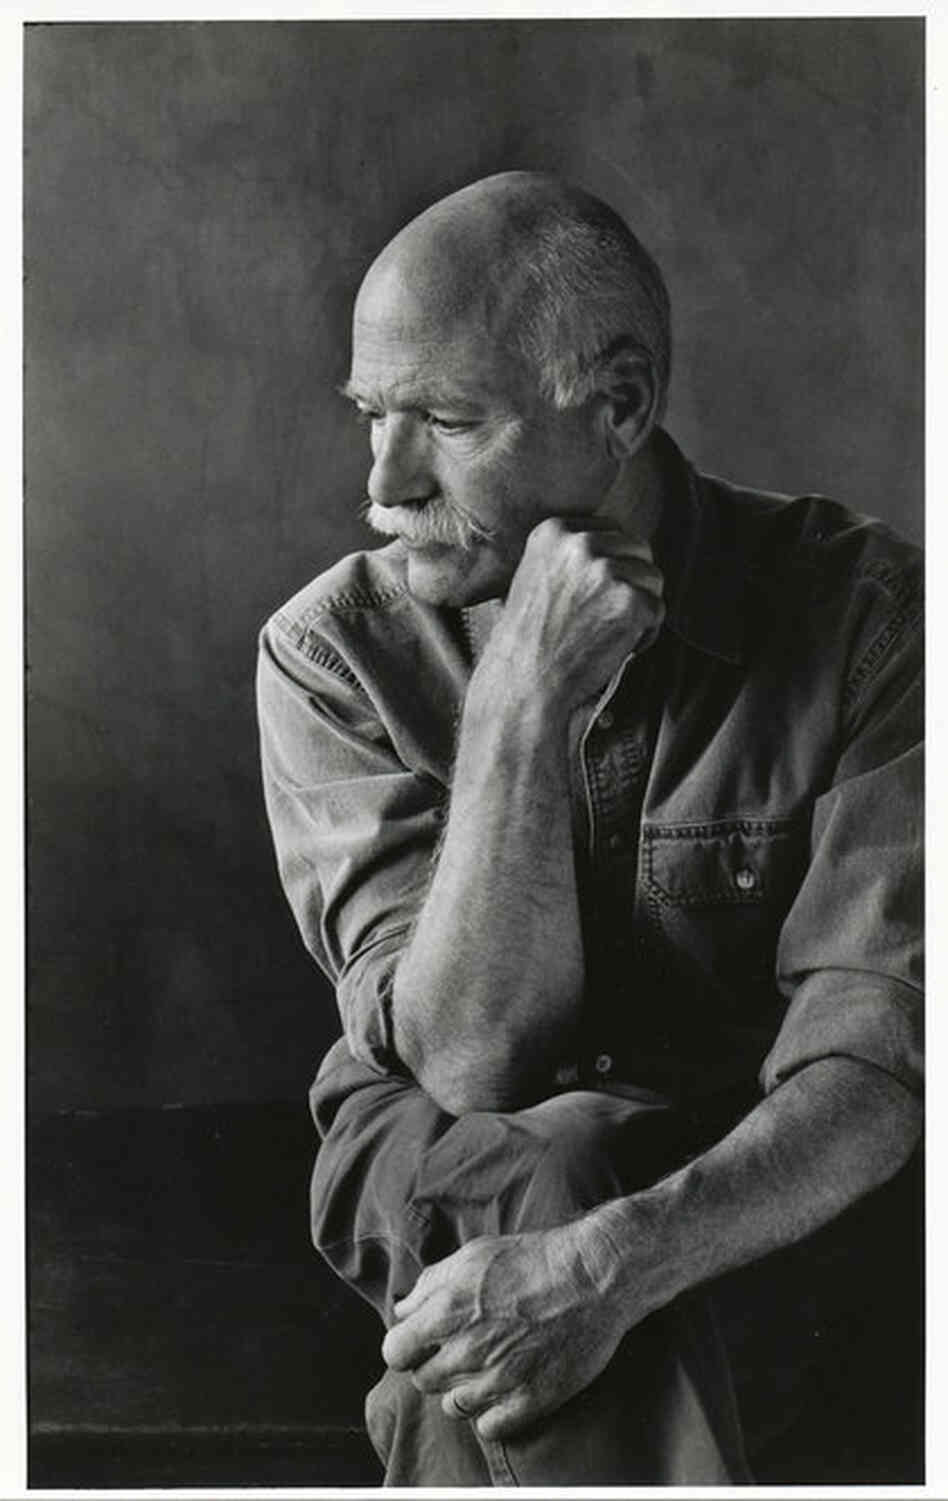 Tobias Wolff, New York City, 2007